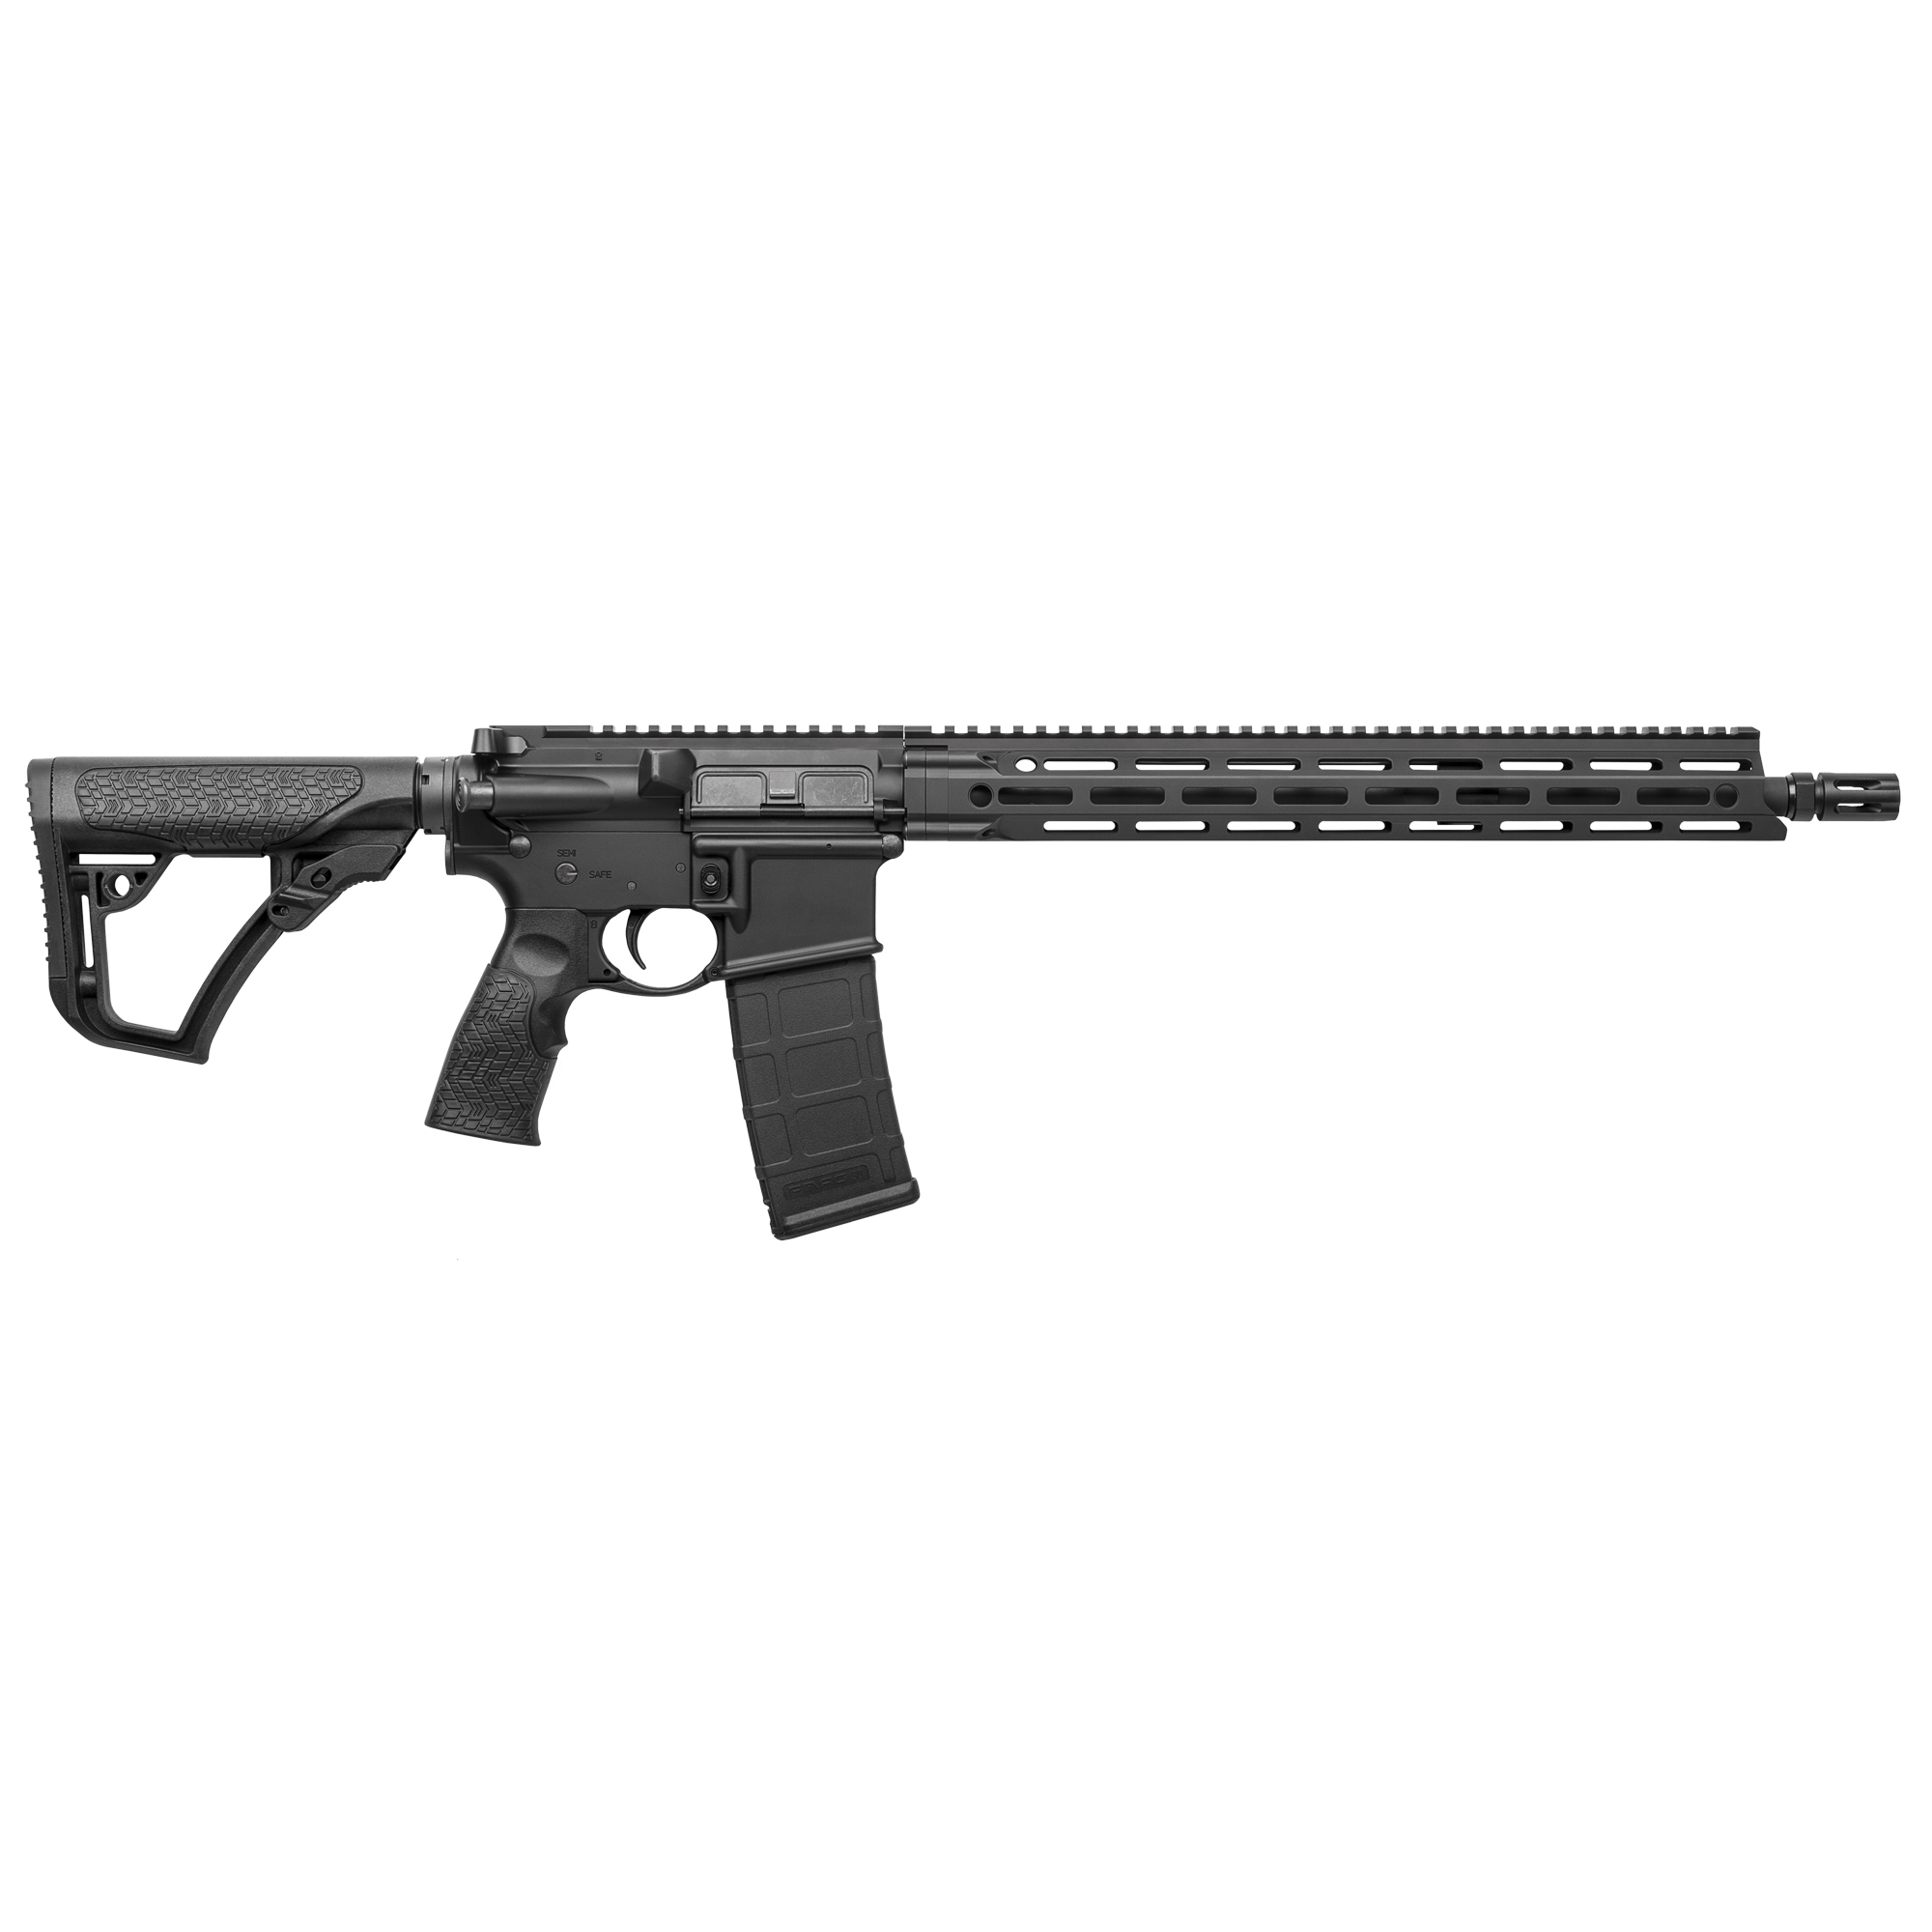 "The Daniel Defense V7 LW is the first rifle in the DDM4 lineup to feature the M-LOK(R) attachment technology with the Daniel Defense MFR 15.0 rail. Built around a Cold Hammer Forged"" 16"" lightweight profile barrel"" the V7 has a DD improved Flash Suppressor to reduce flash signature. The mid-length gas system provides smooth and reliable cycling under any condition and reduces both perceived recoil and wear on moving parts."